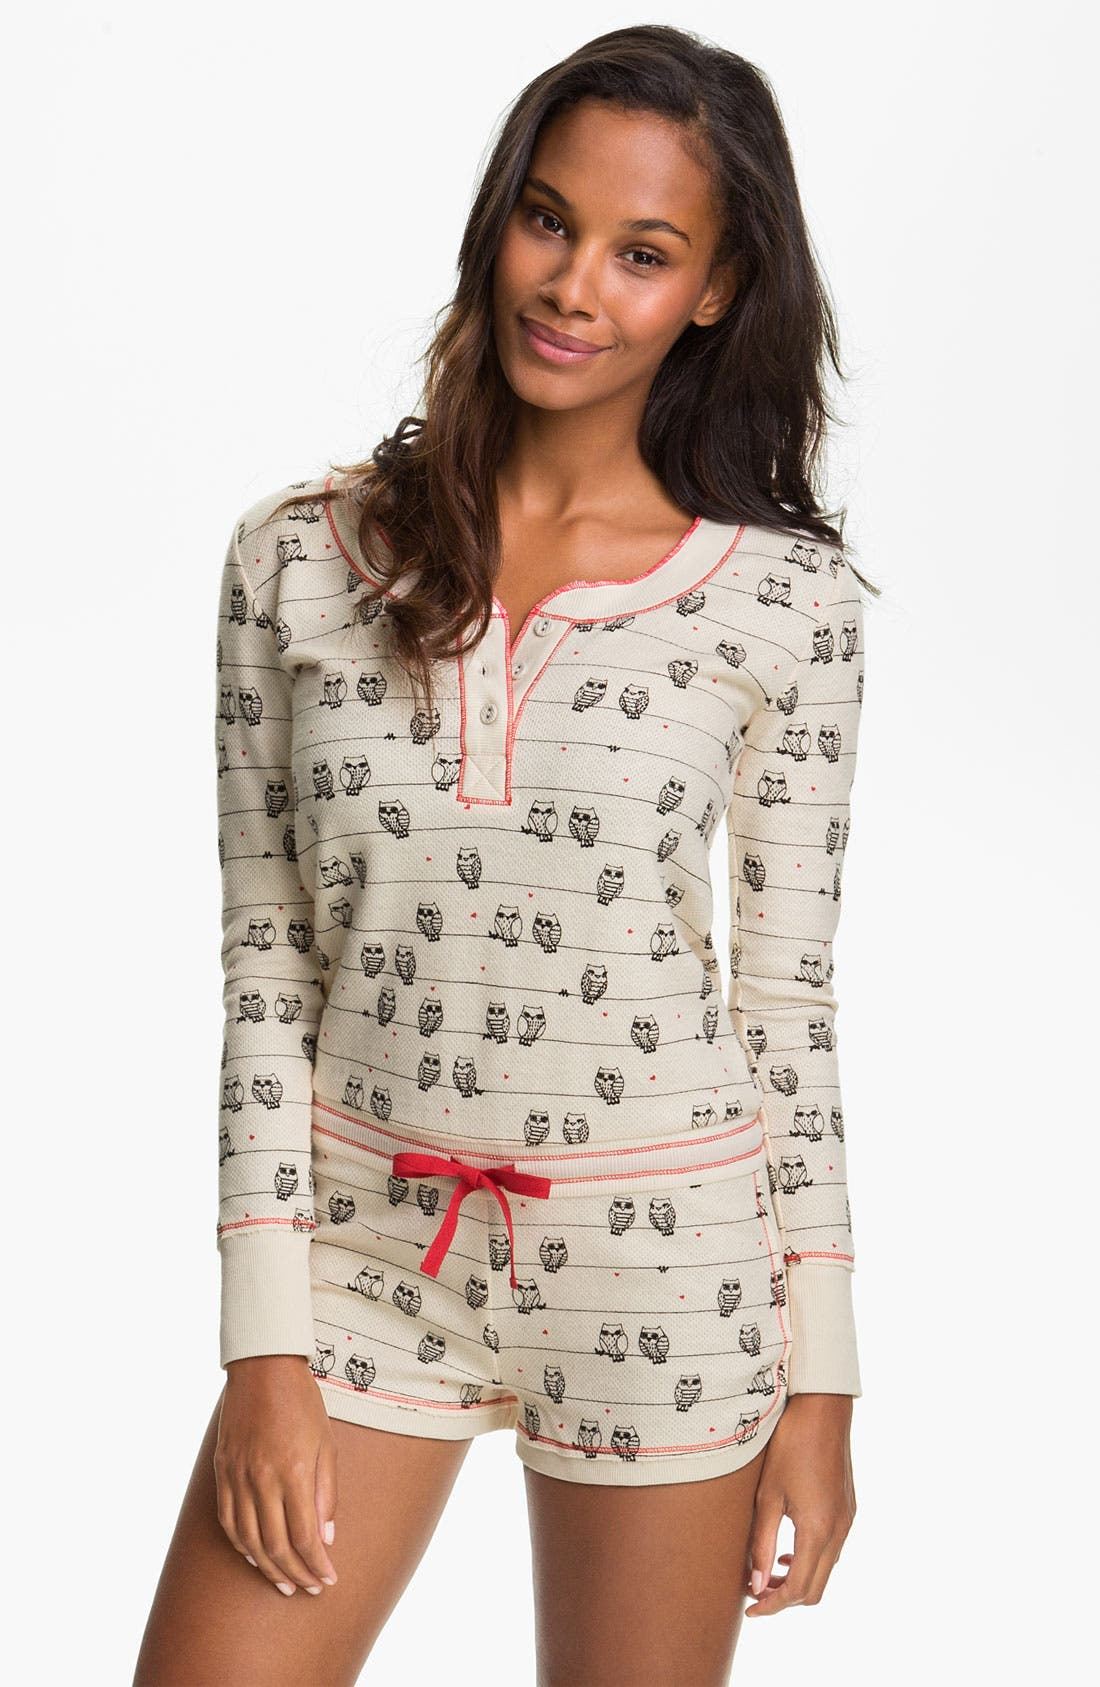 Alternate Image 1 Selected - Kensie 'Quite the Character' Thermal Knit Romper